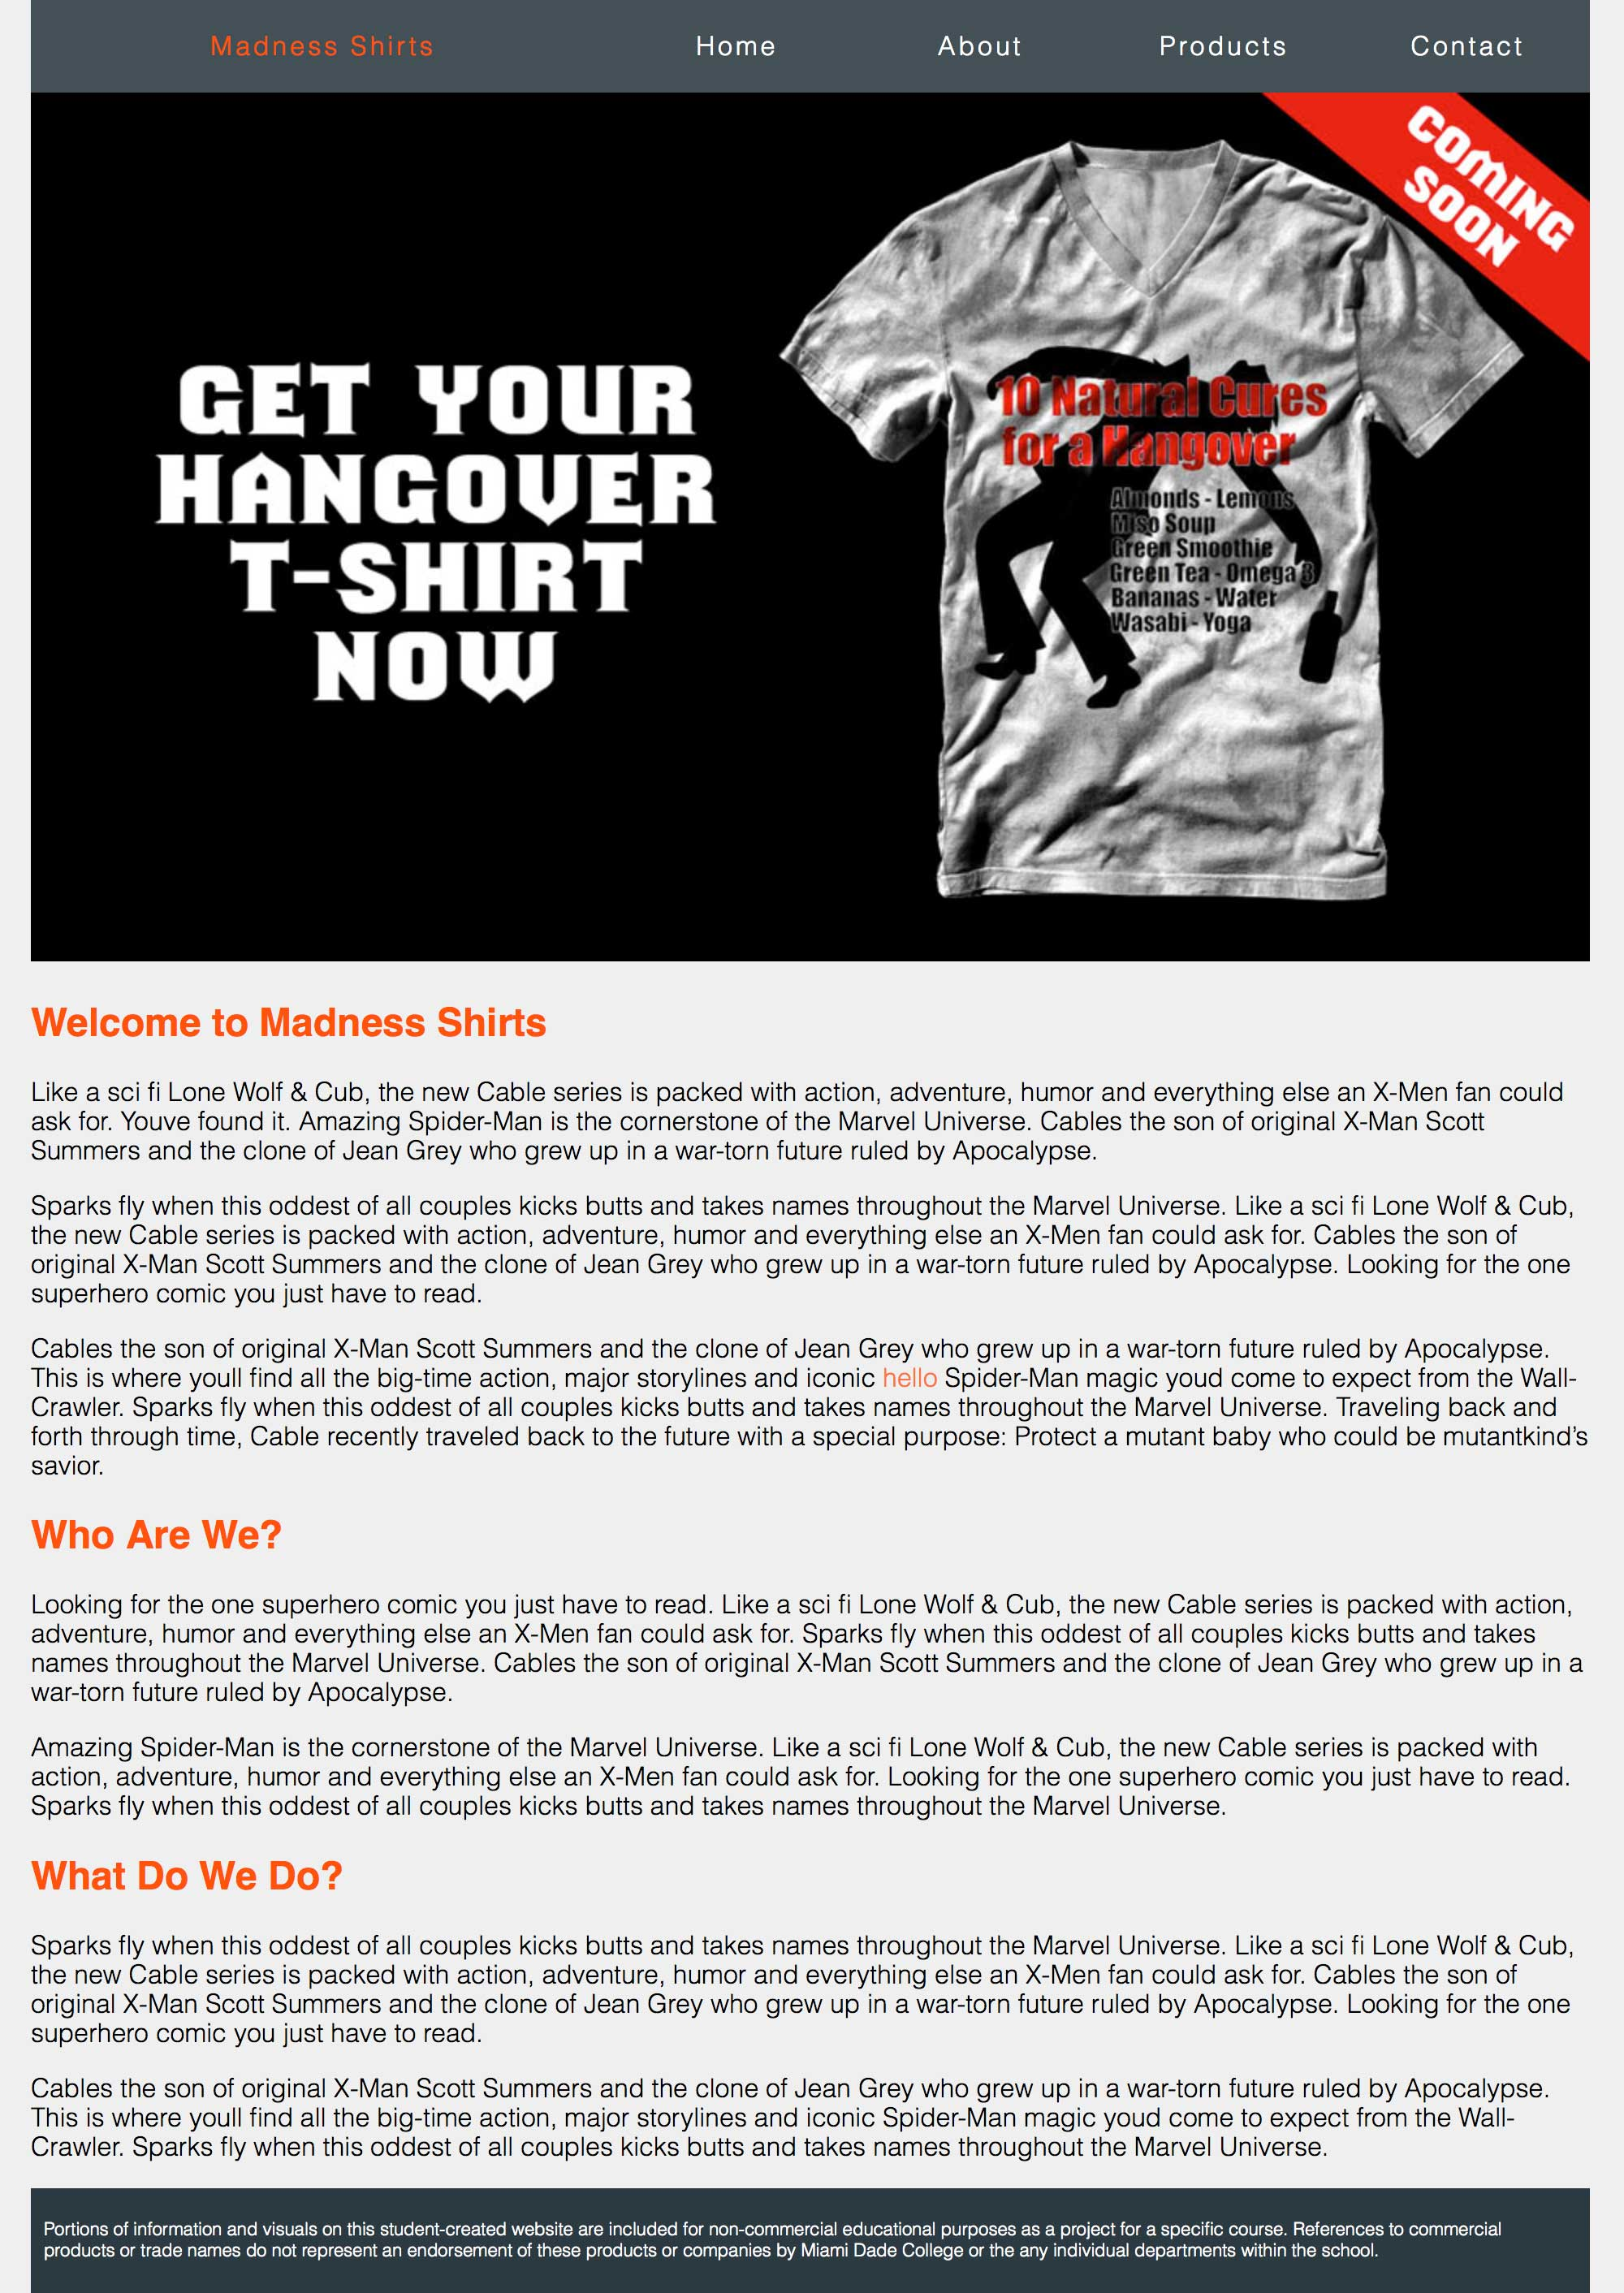 Madness Shirts homepage